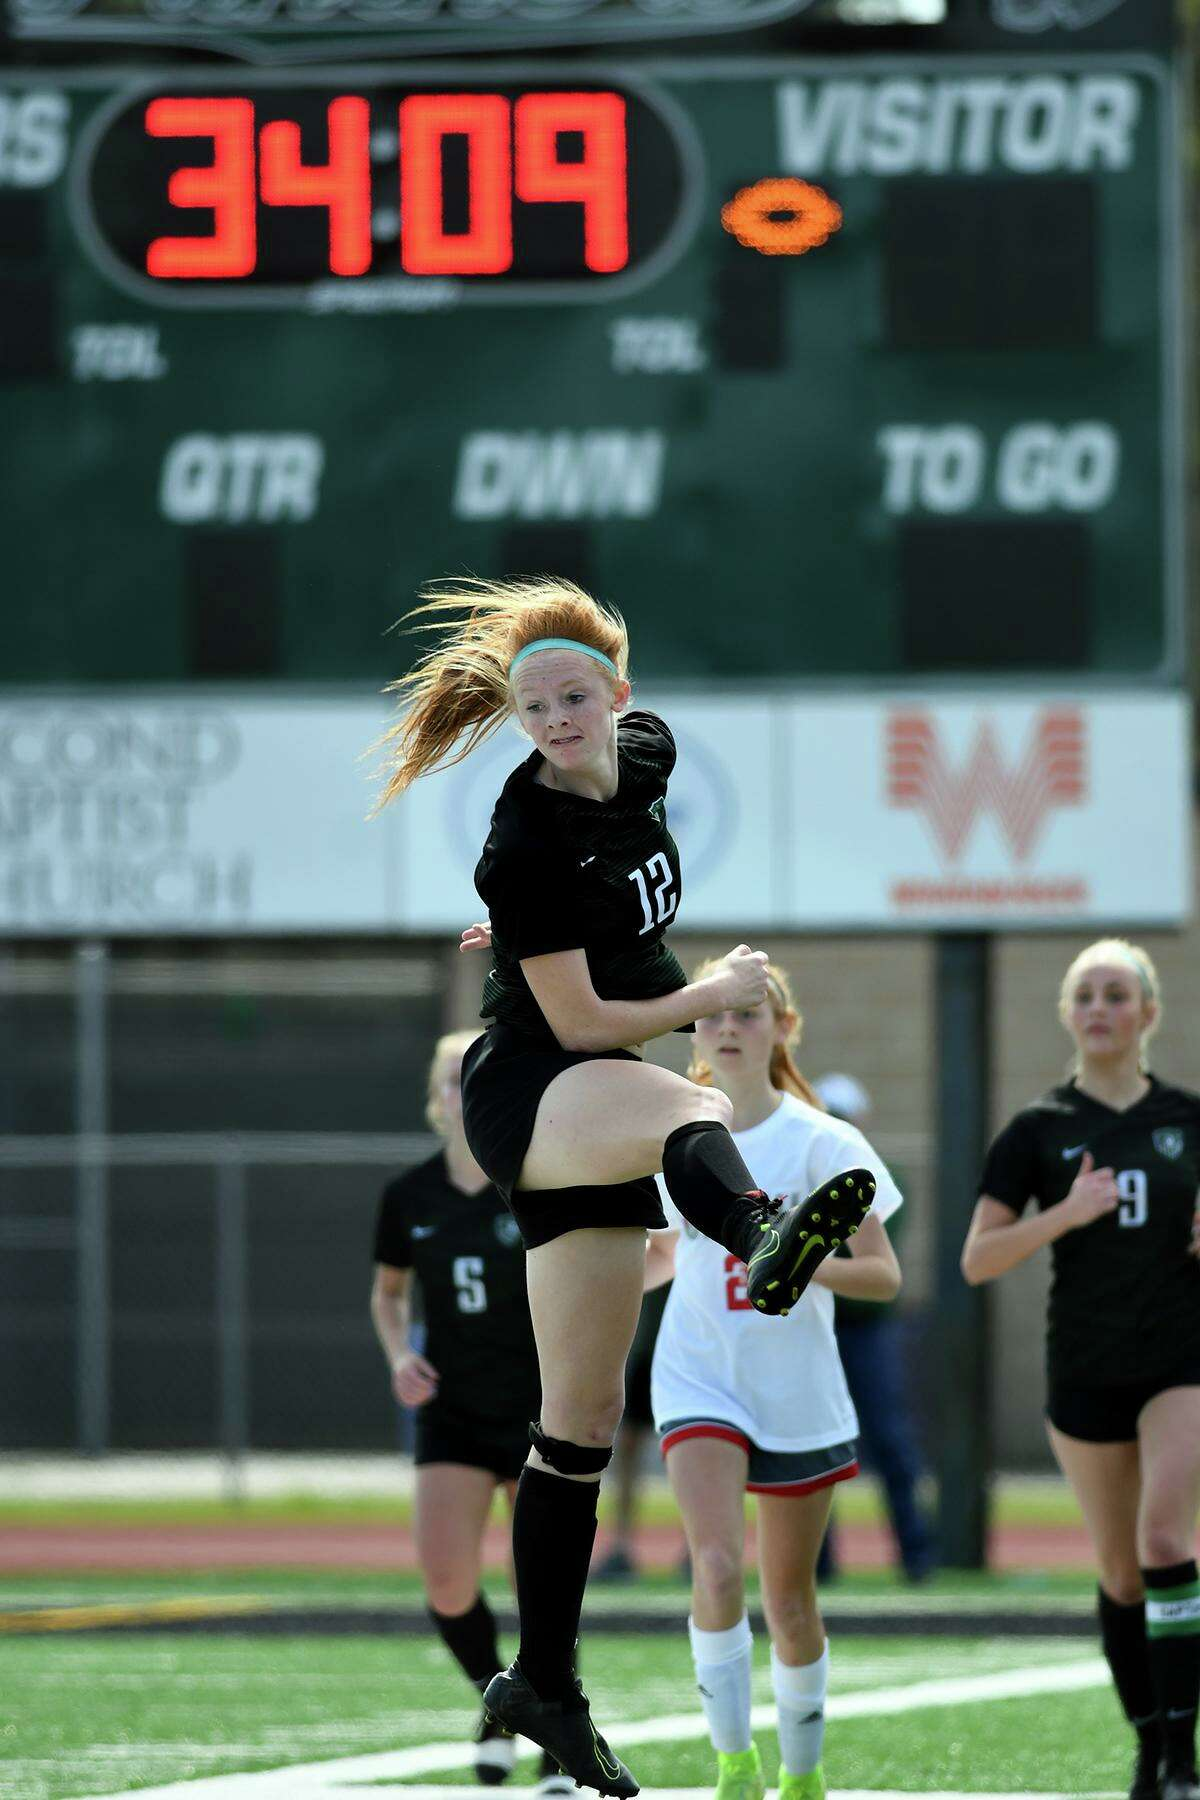 Kingwood Park freshman forward Emma Yeager follows the ball upfield after making a play against Tomball during their District 20-5A matchup at KPHS on Feb. 29, 2020.